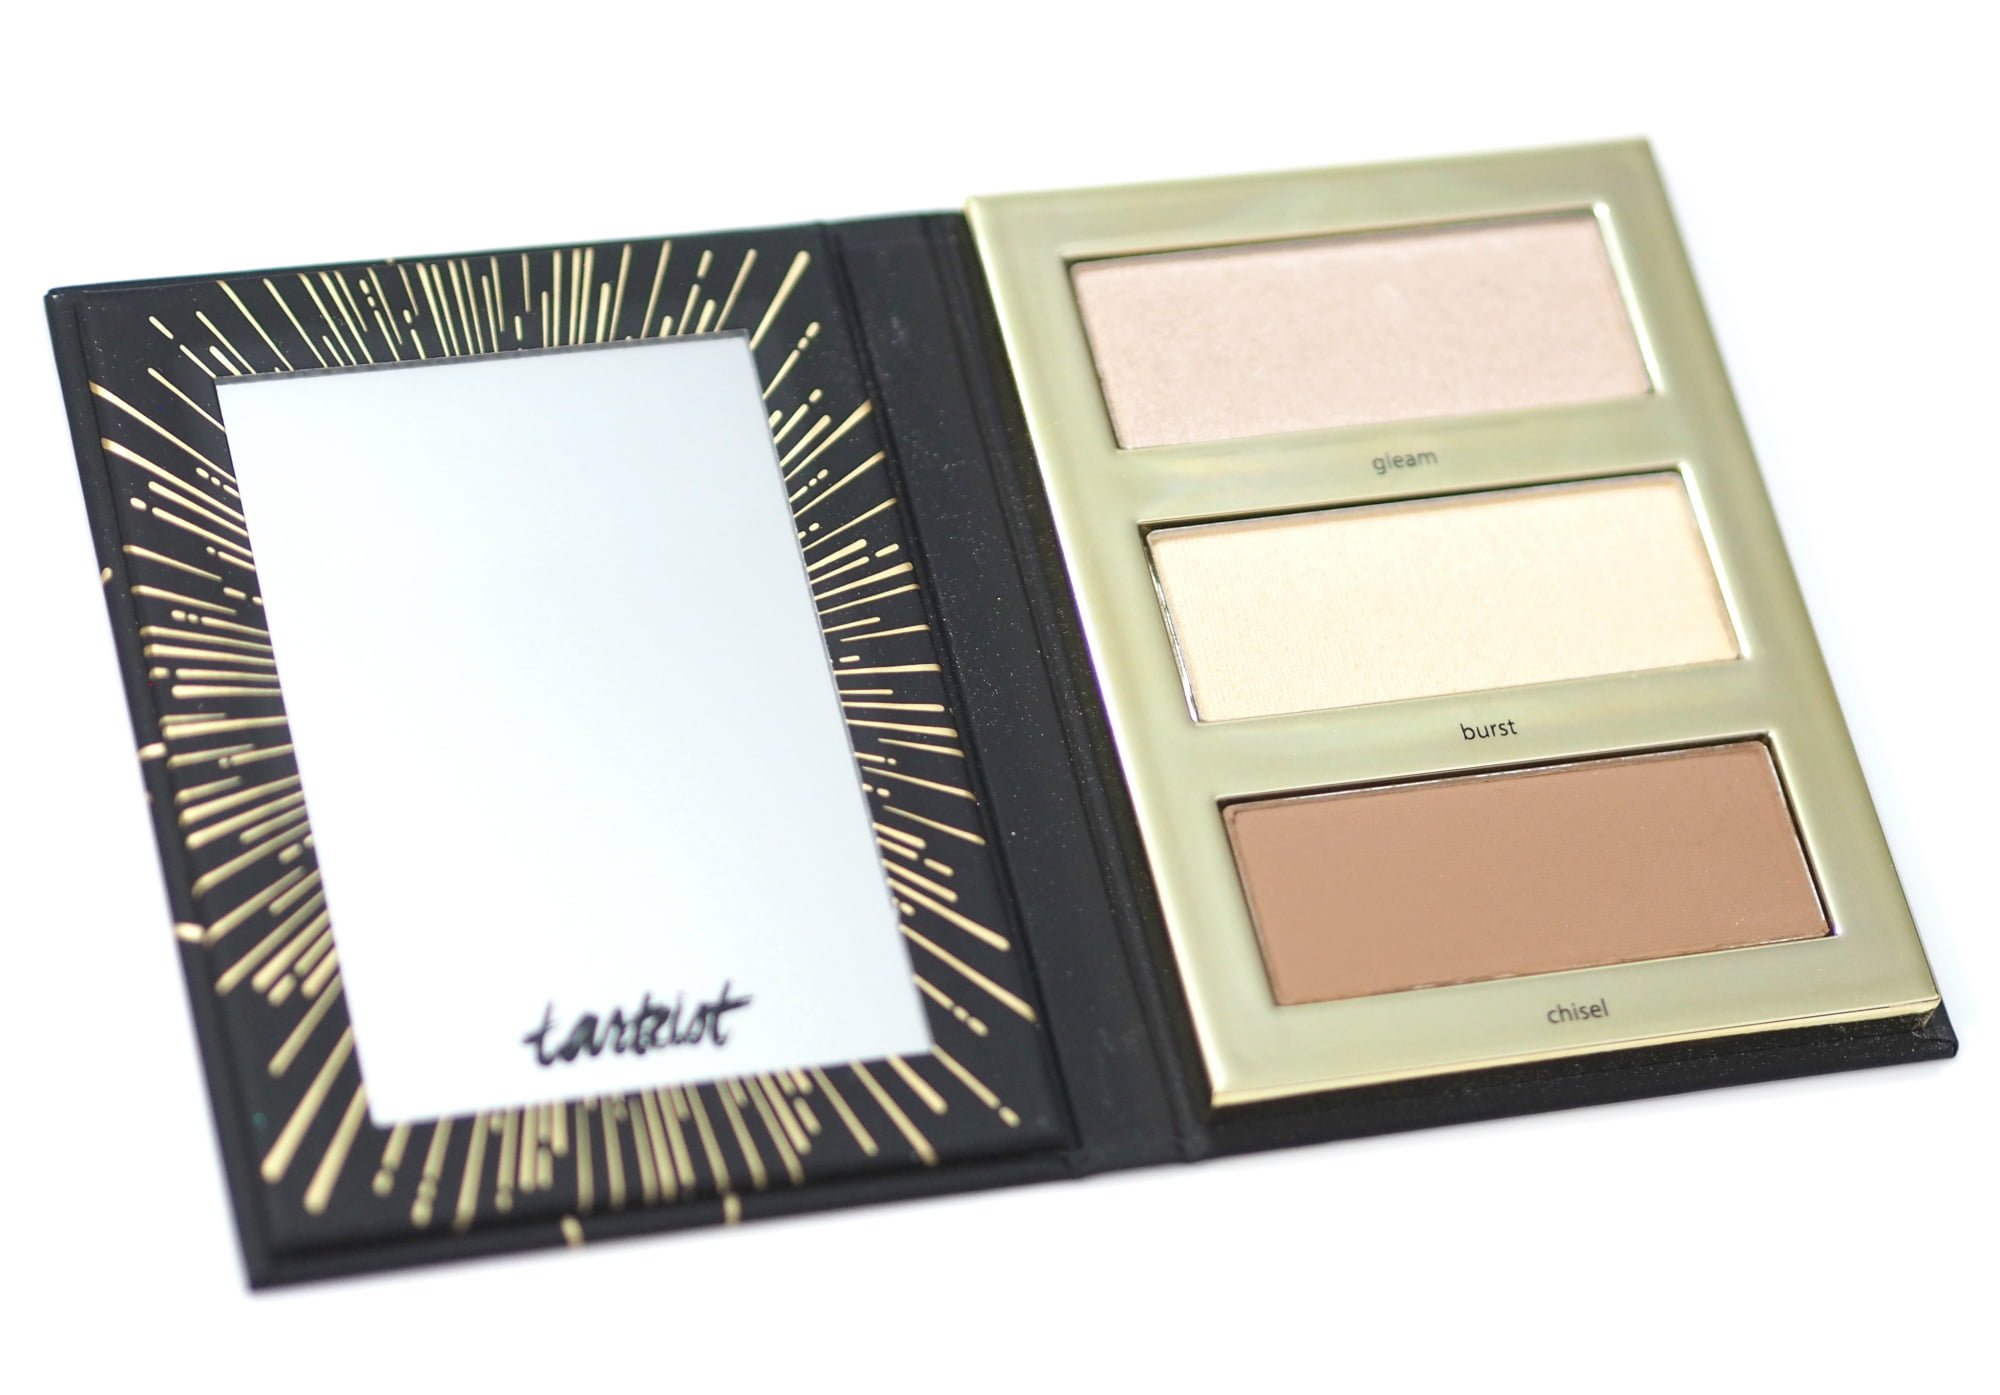 Tarte Tarteist Pro Glow to Go Highlight and Contour Palette Review and Swatches